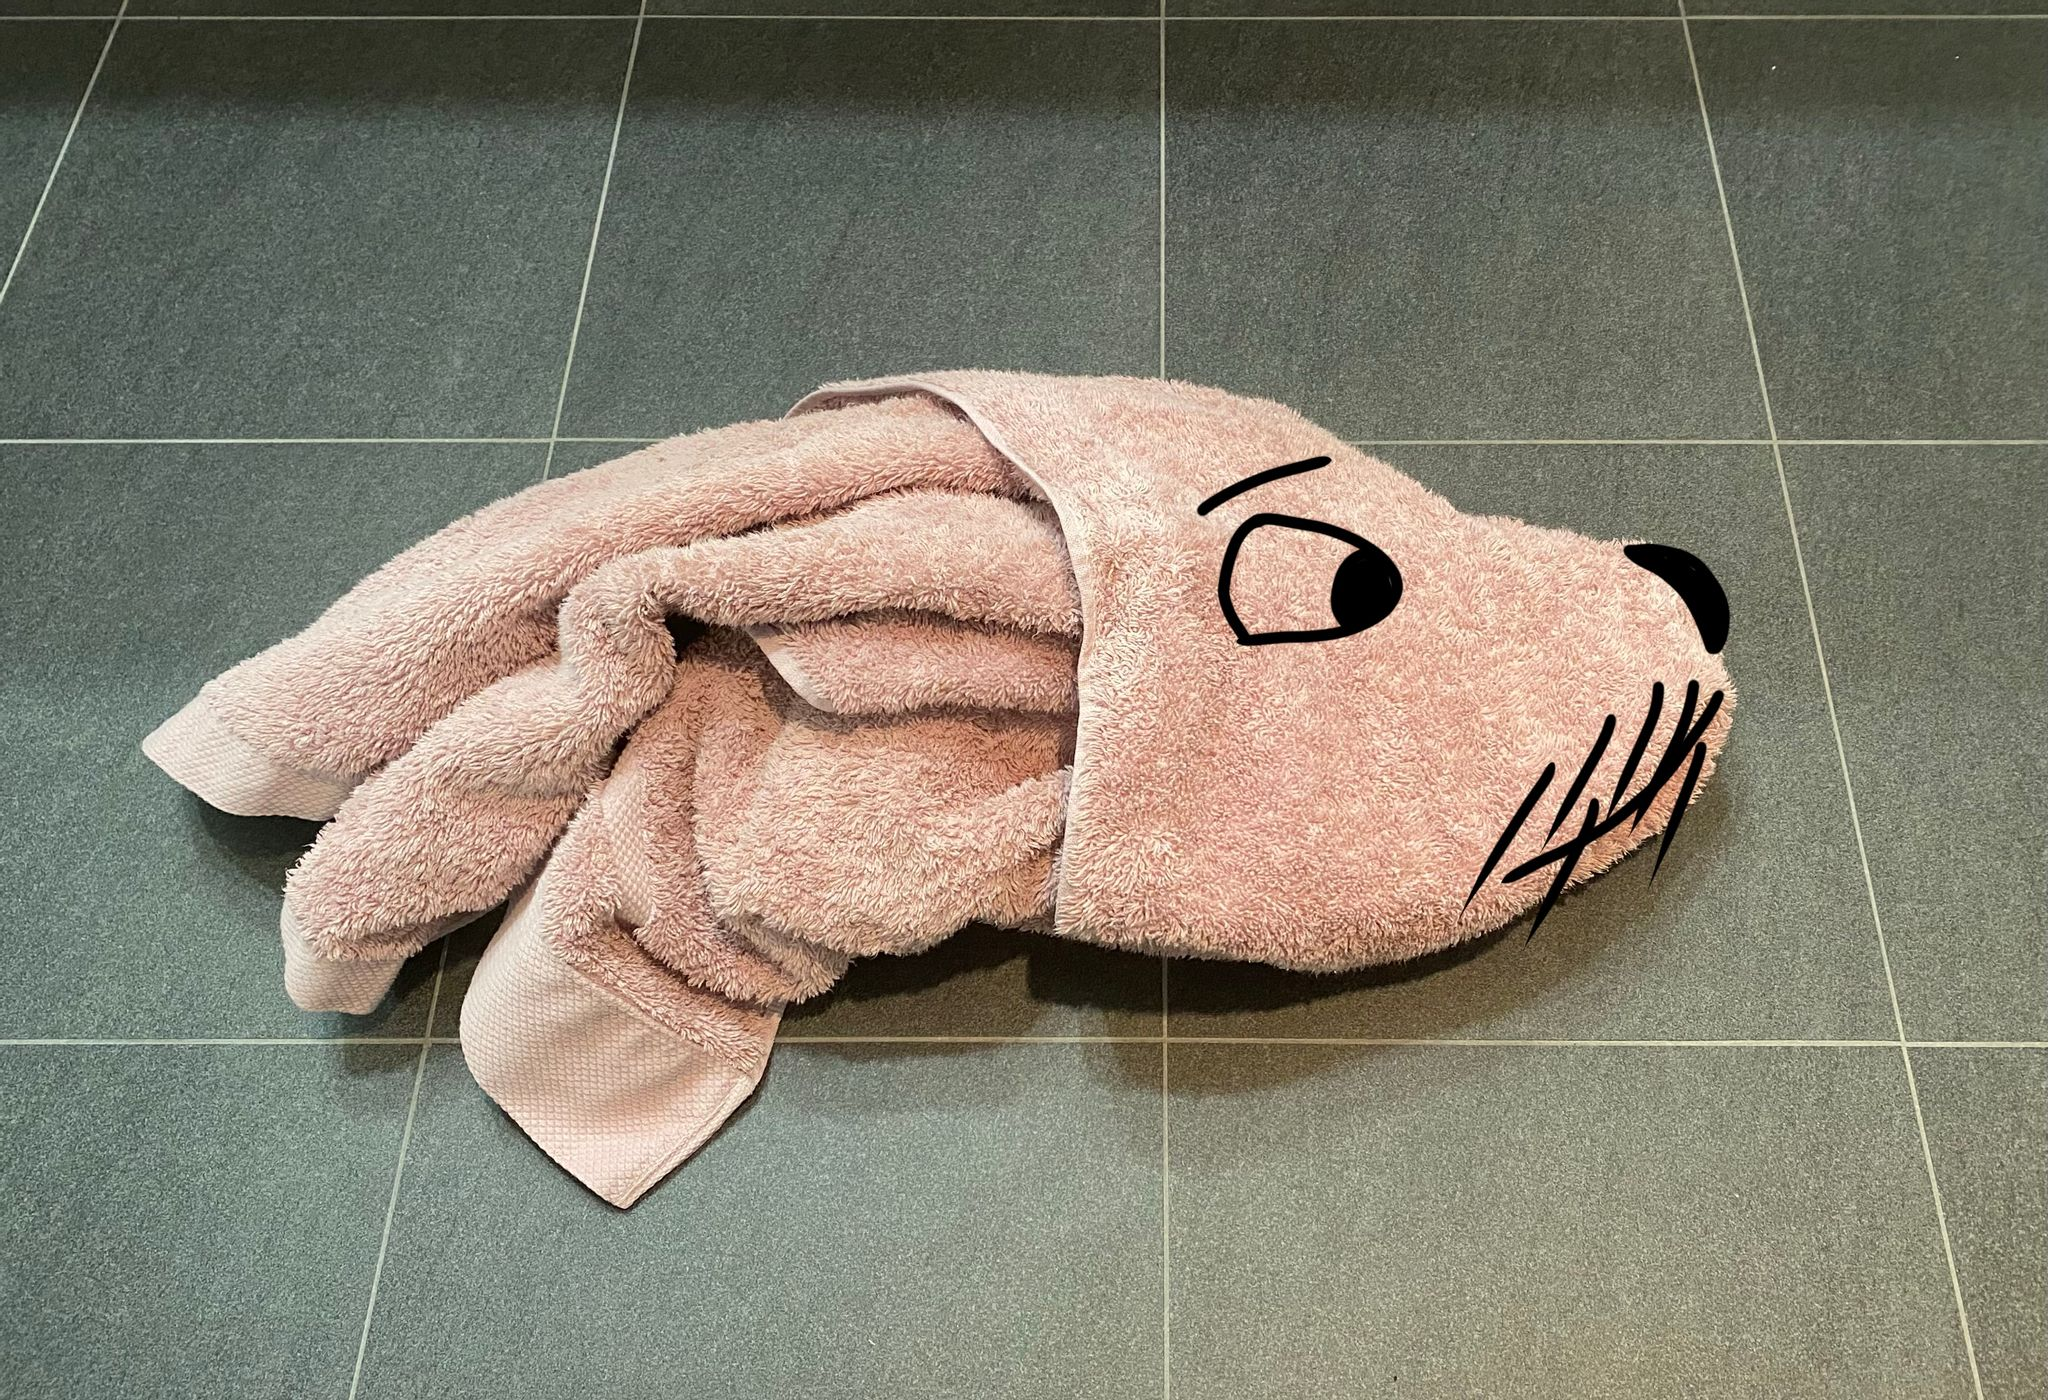 A photo of a pink towel crumpled up on the floor such that it looks like it's a profile of a dog's head. I've drawn eyes, a nose, whiskers, and a mouth on the photo so it looks even more like a dog.